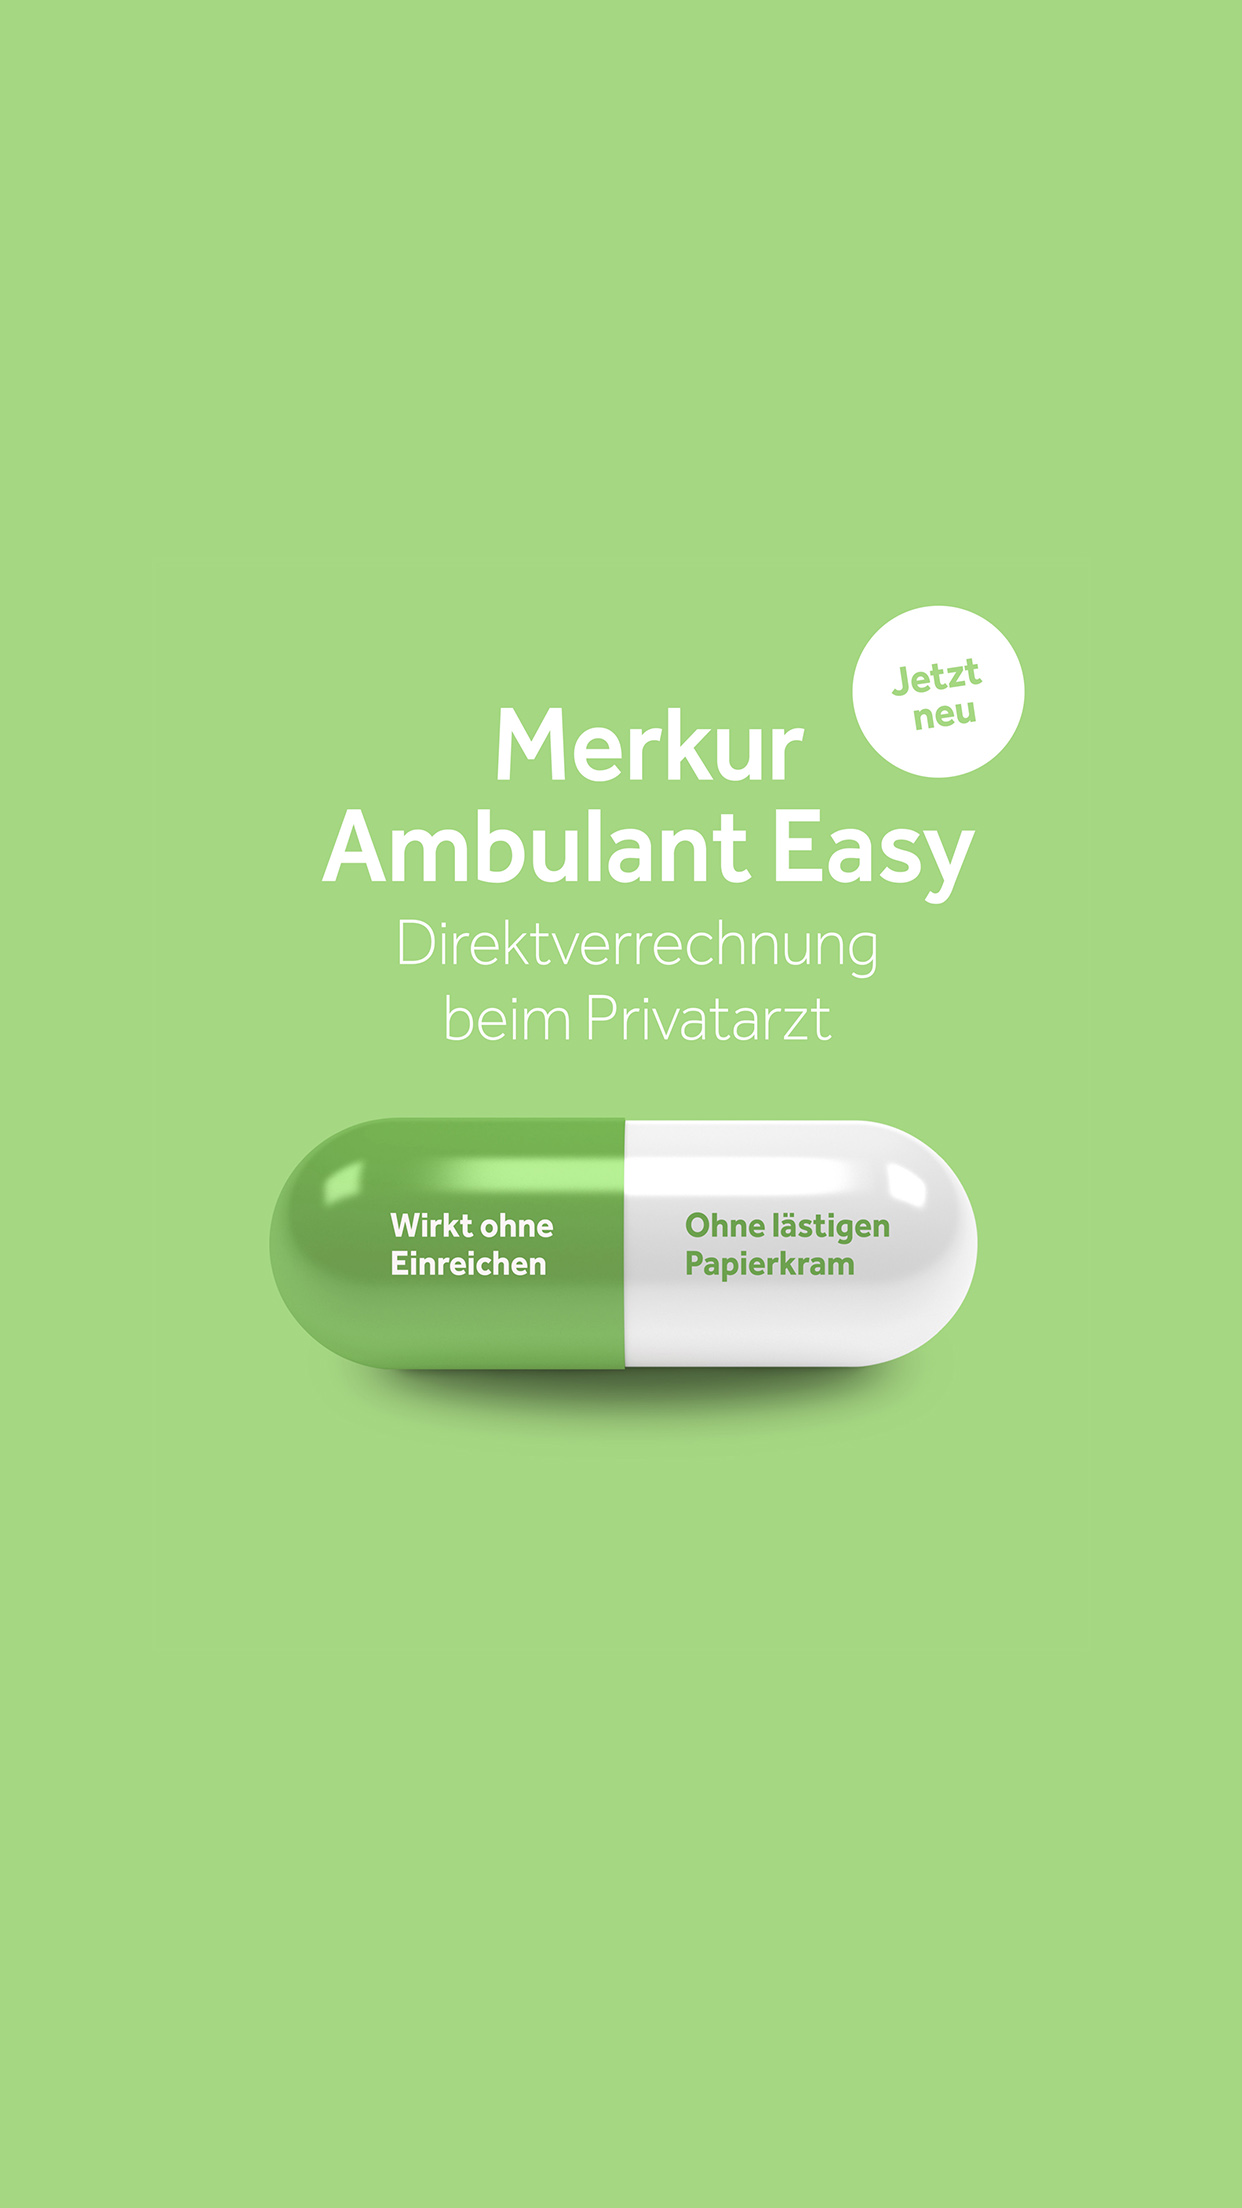 Ambulant Easy Merkur Versicherung